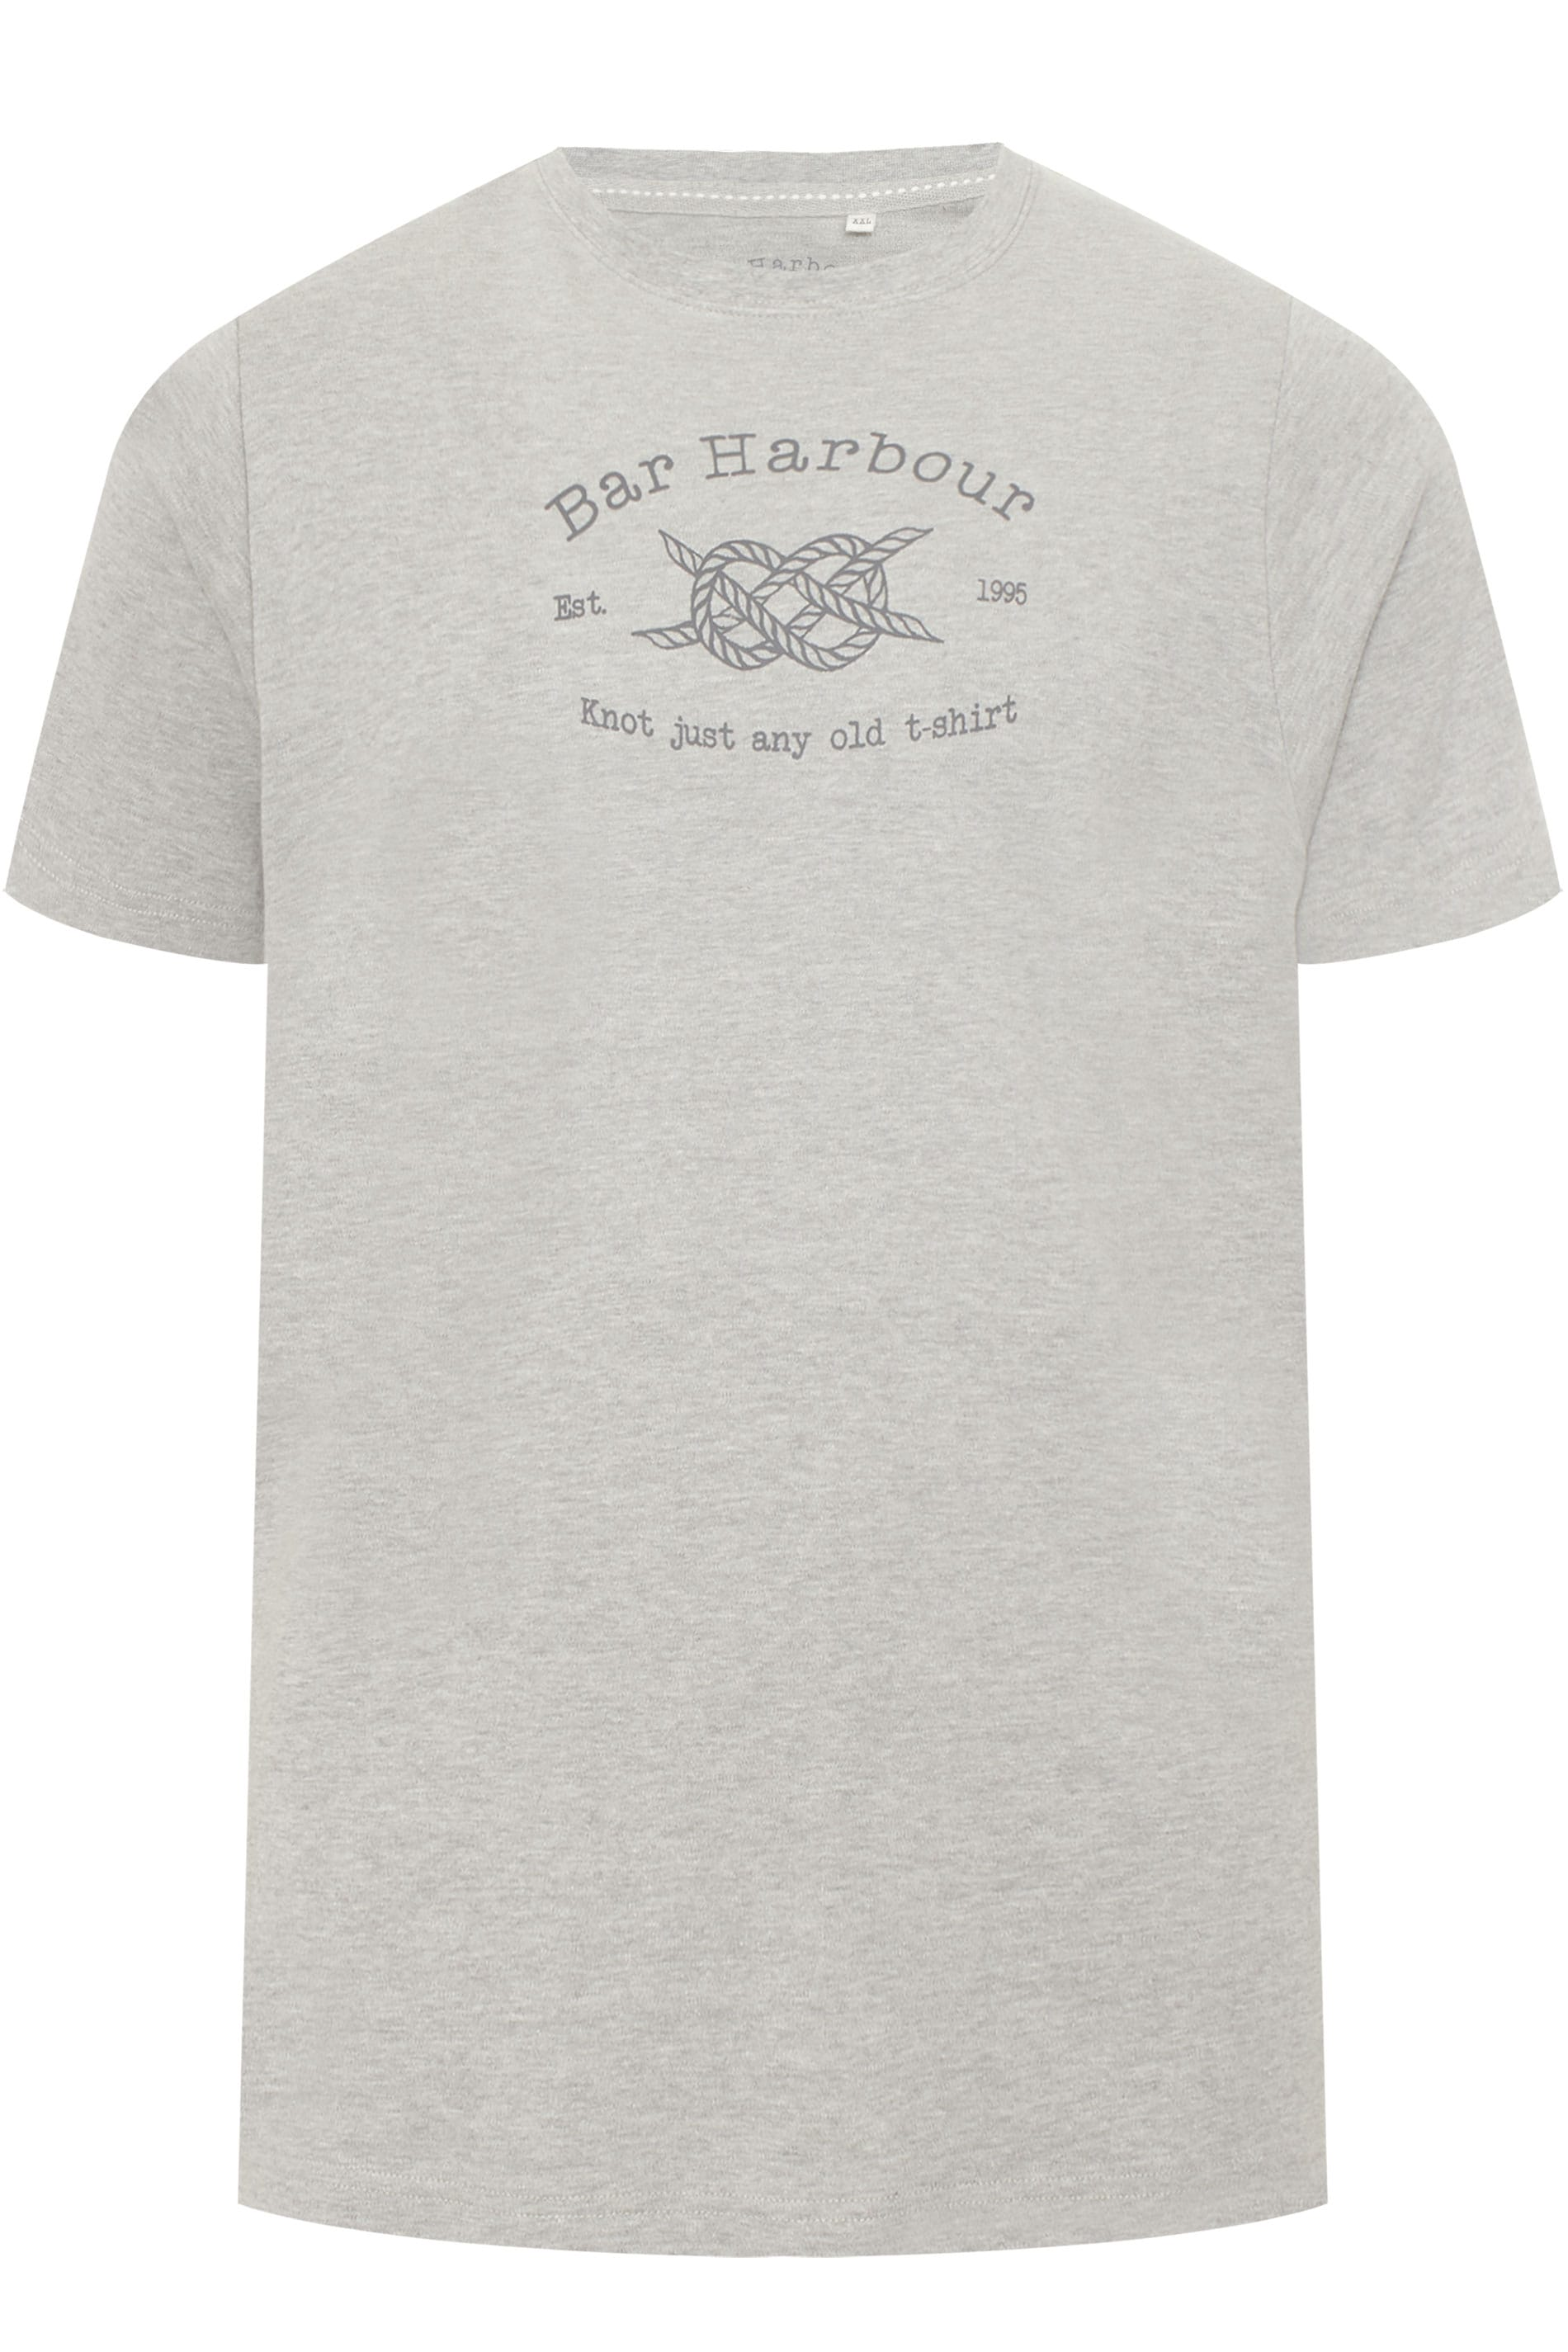 BAR HARBOUR Grey Logo Printed T-Shirt